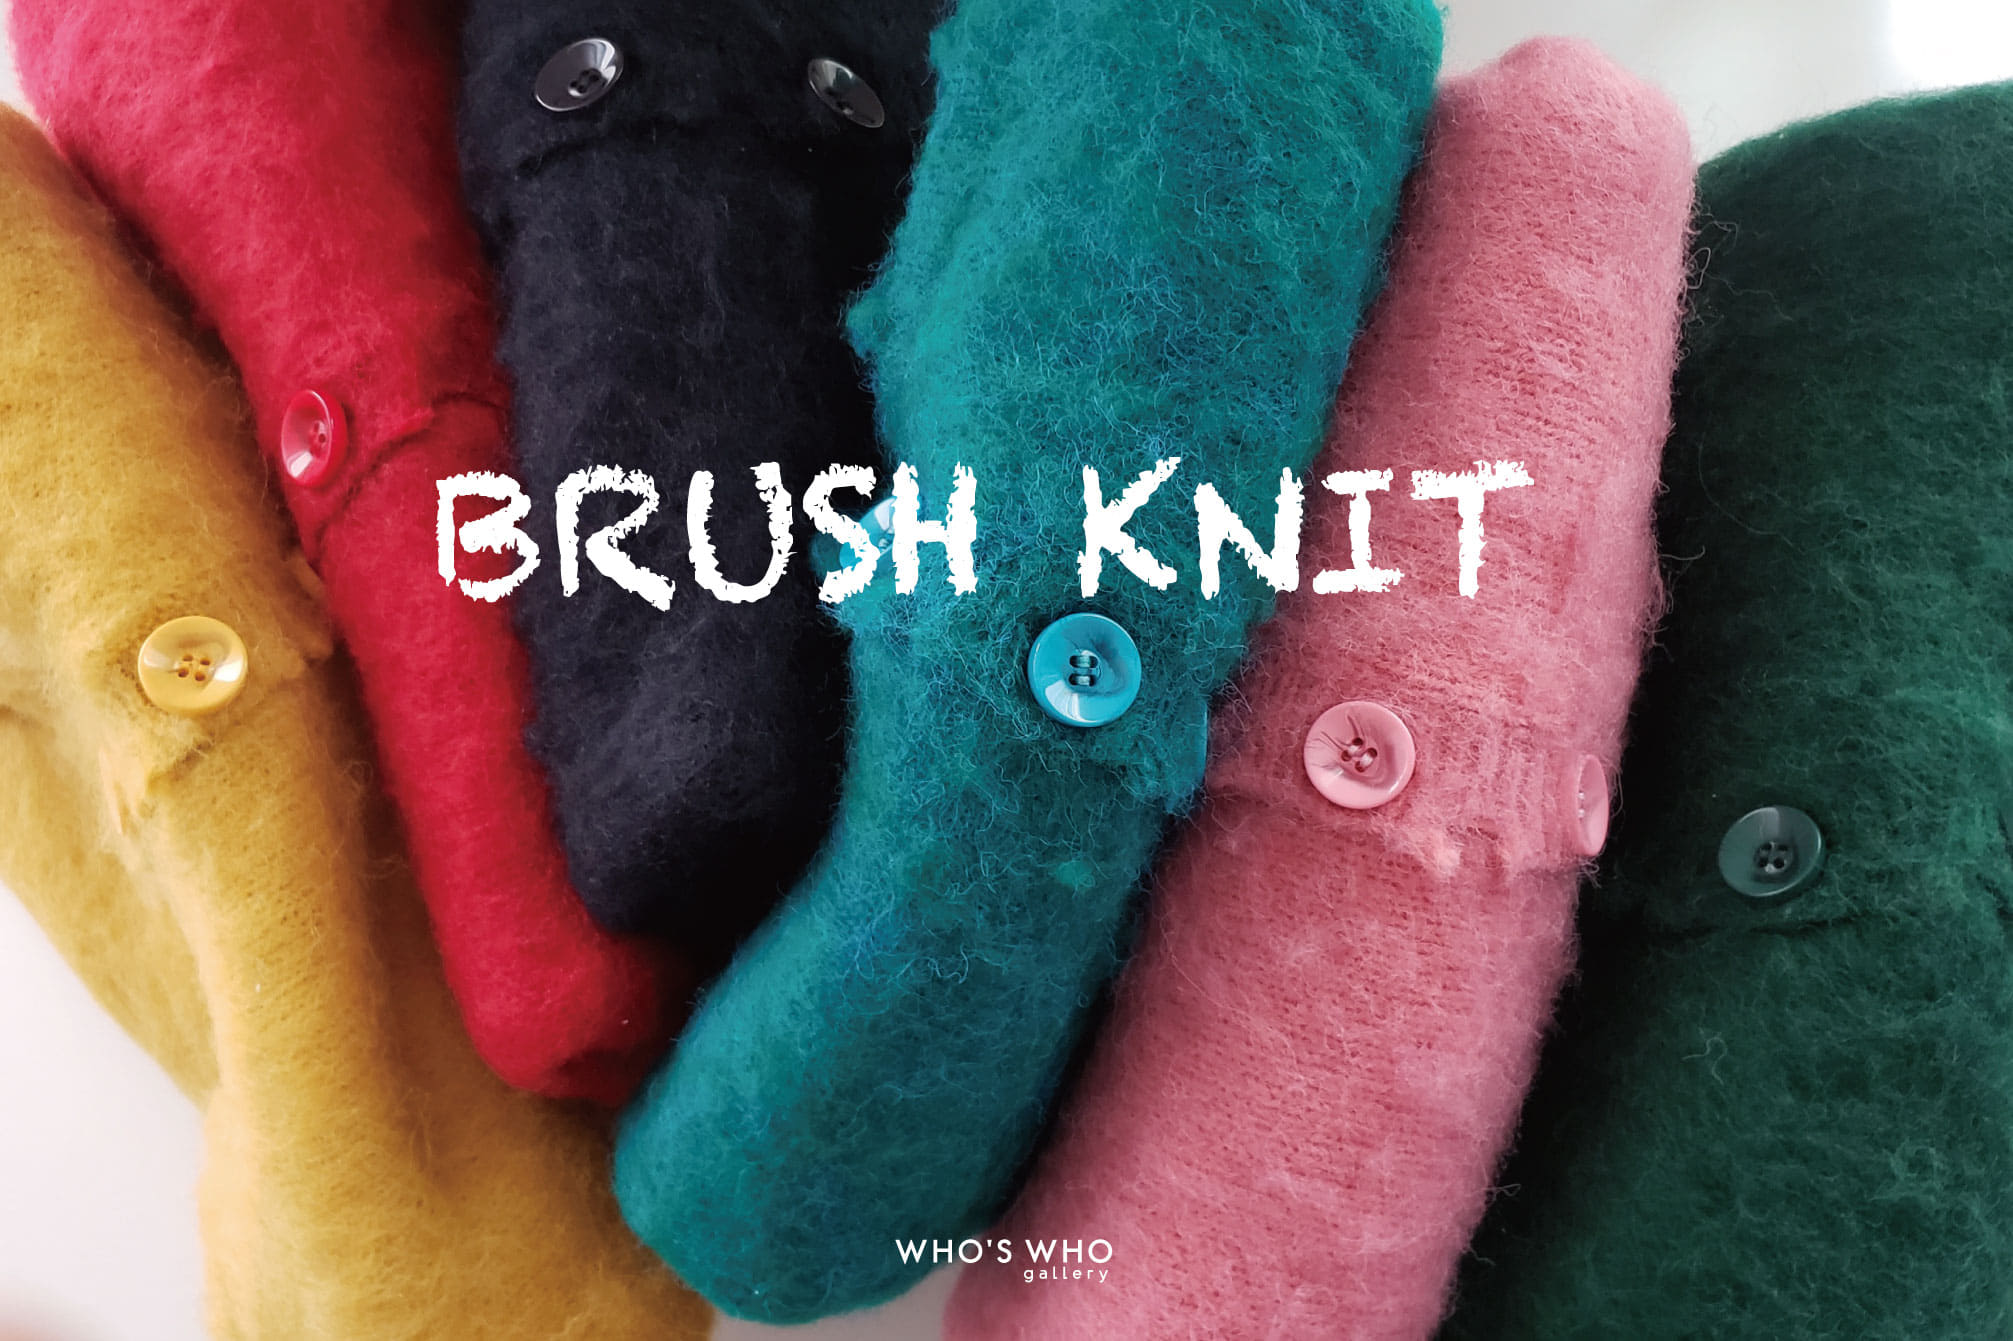 WHO'S WHO gallery 【BRUSH KNIT】